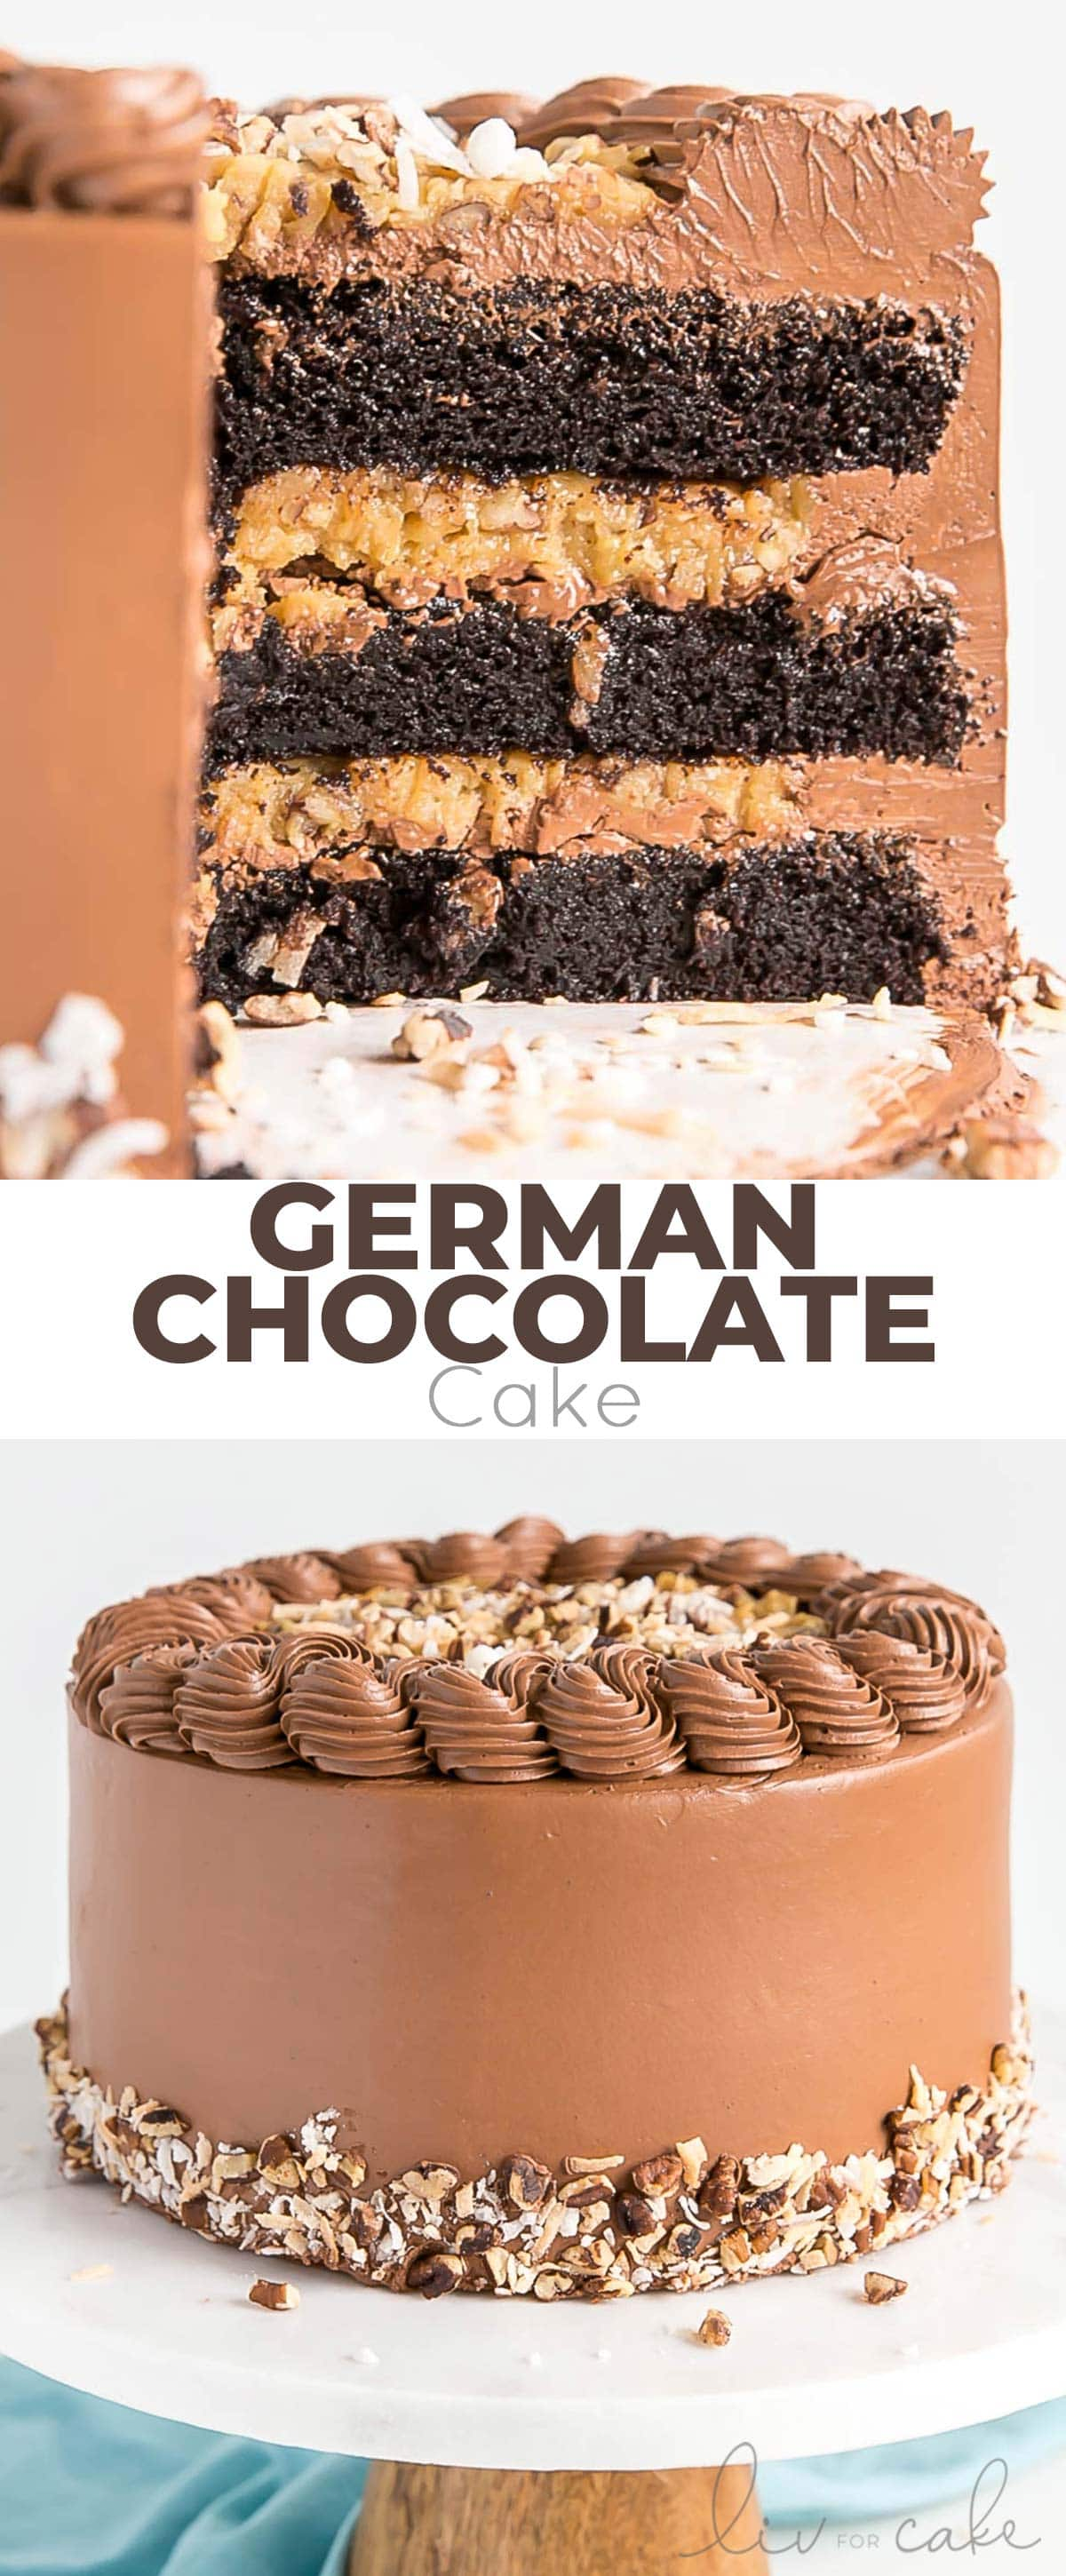 German chocolate cake photo collage.